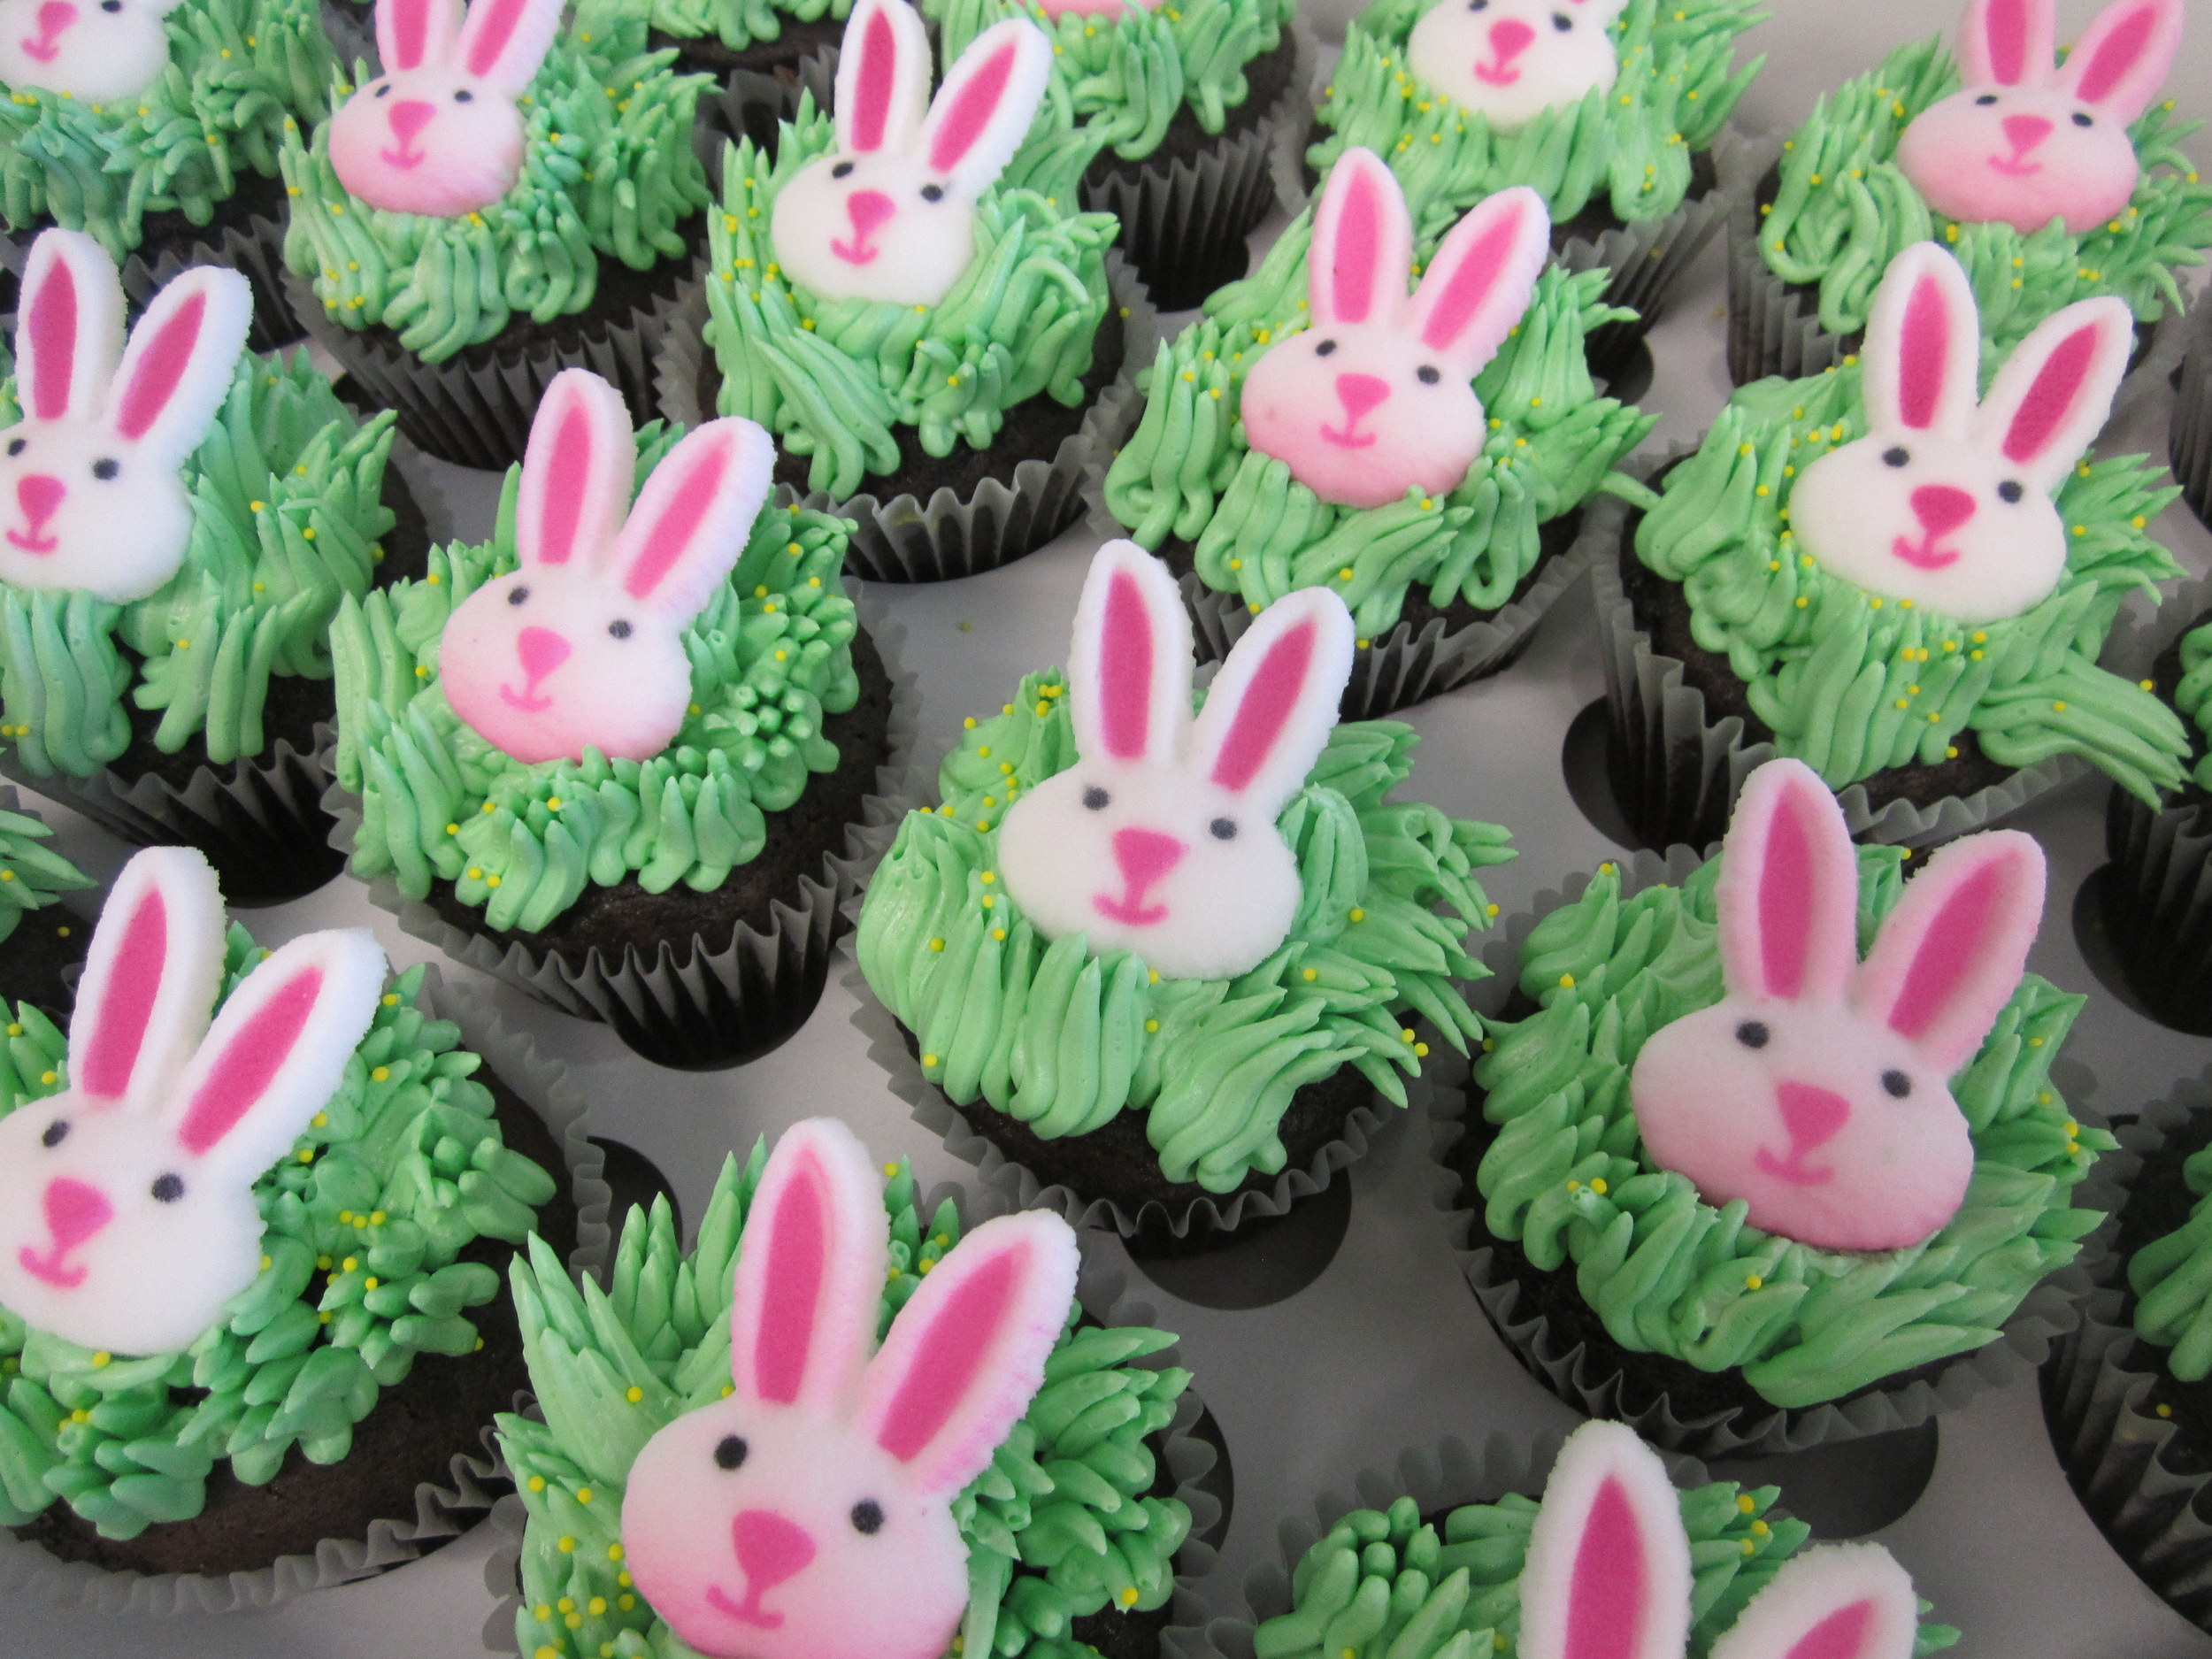 cupcakes-easter bunny with grass.JPG